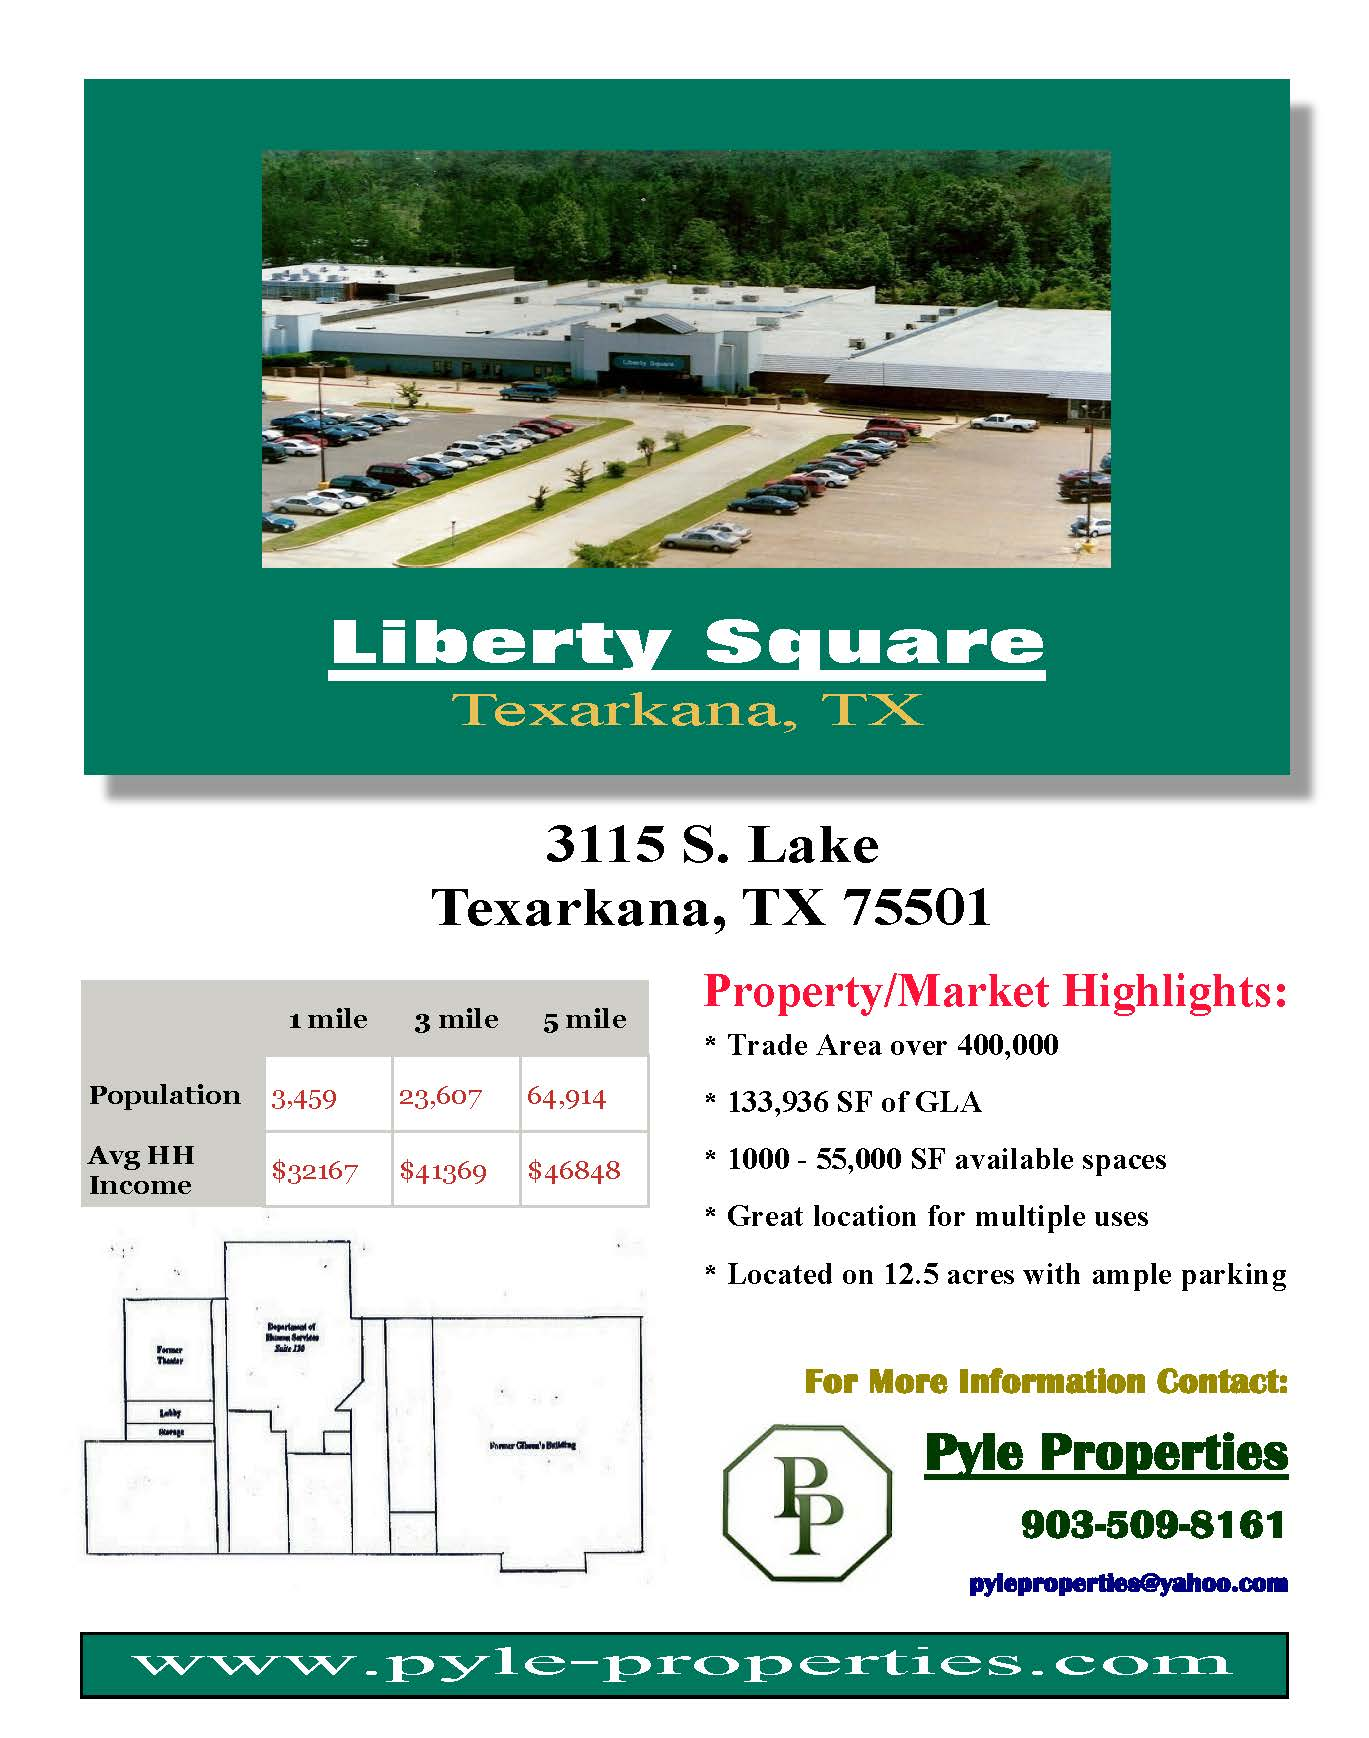 Liberty Square Flyer